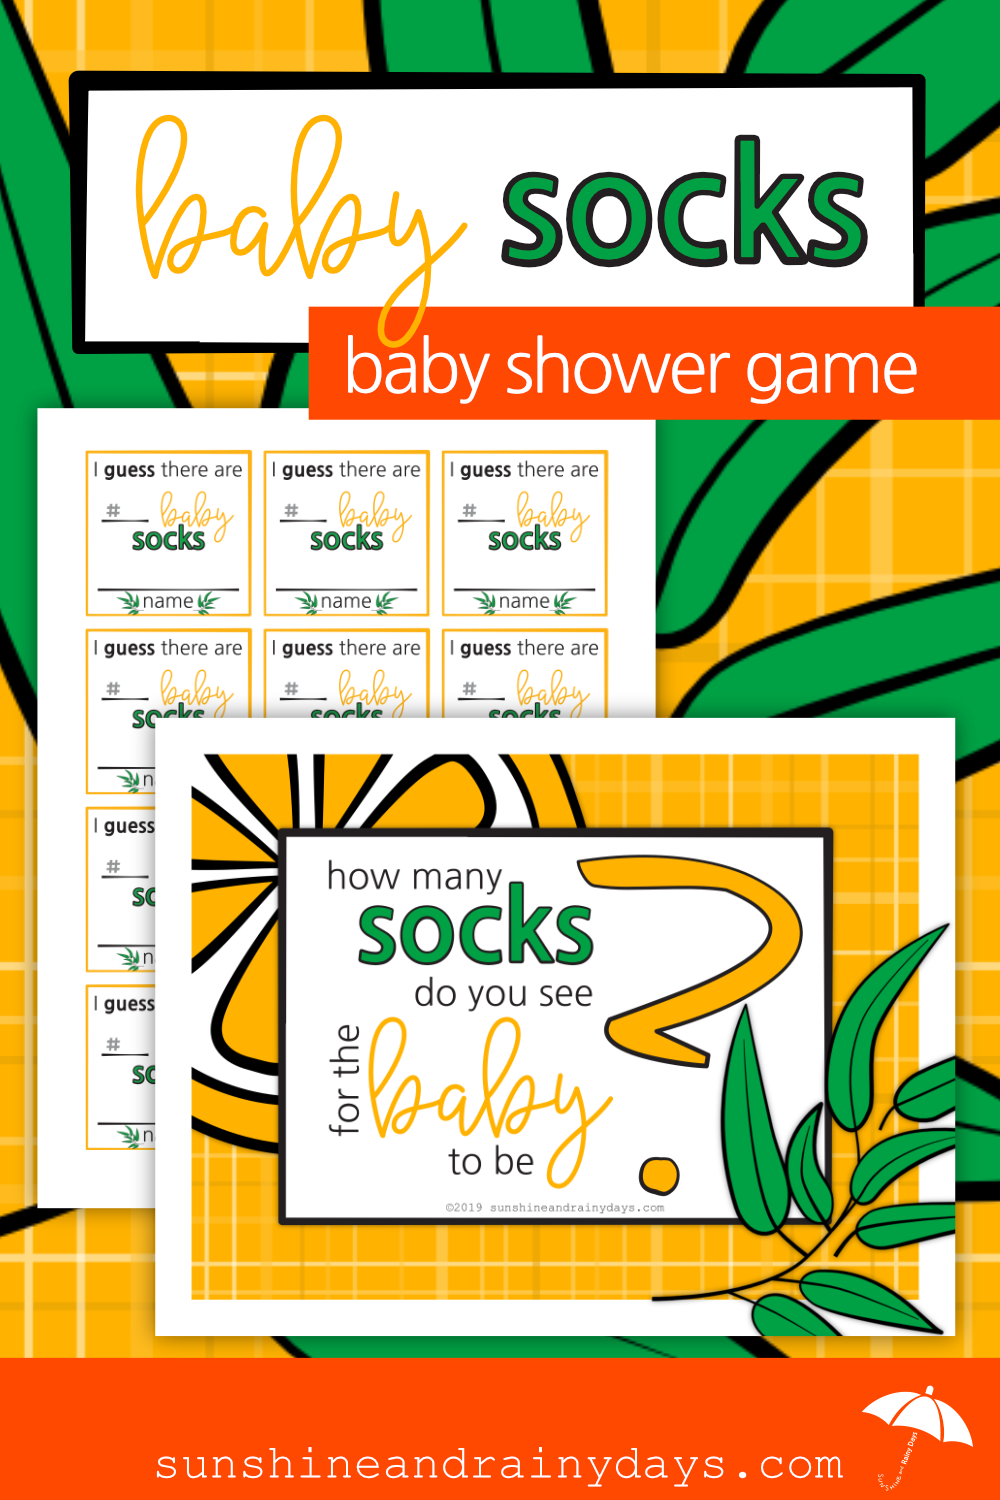 How Many Socks - Baby Shower Activity (PDF)